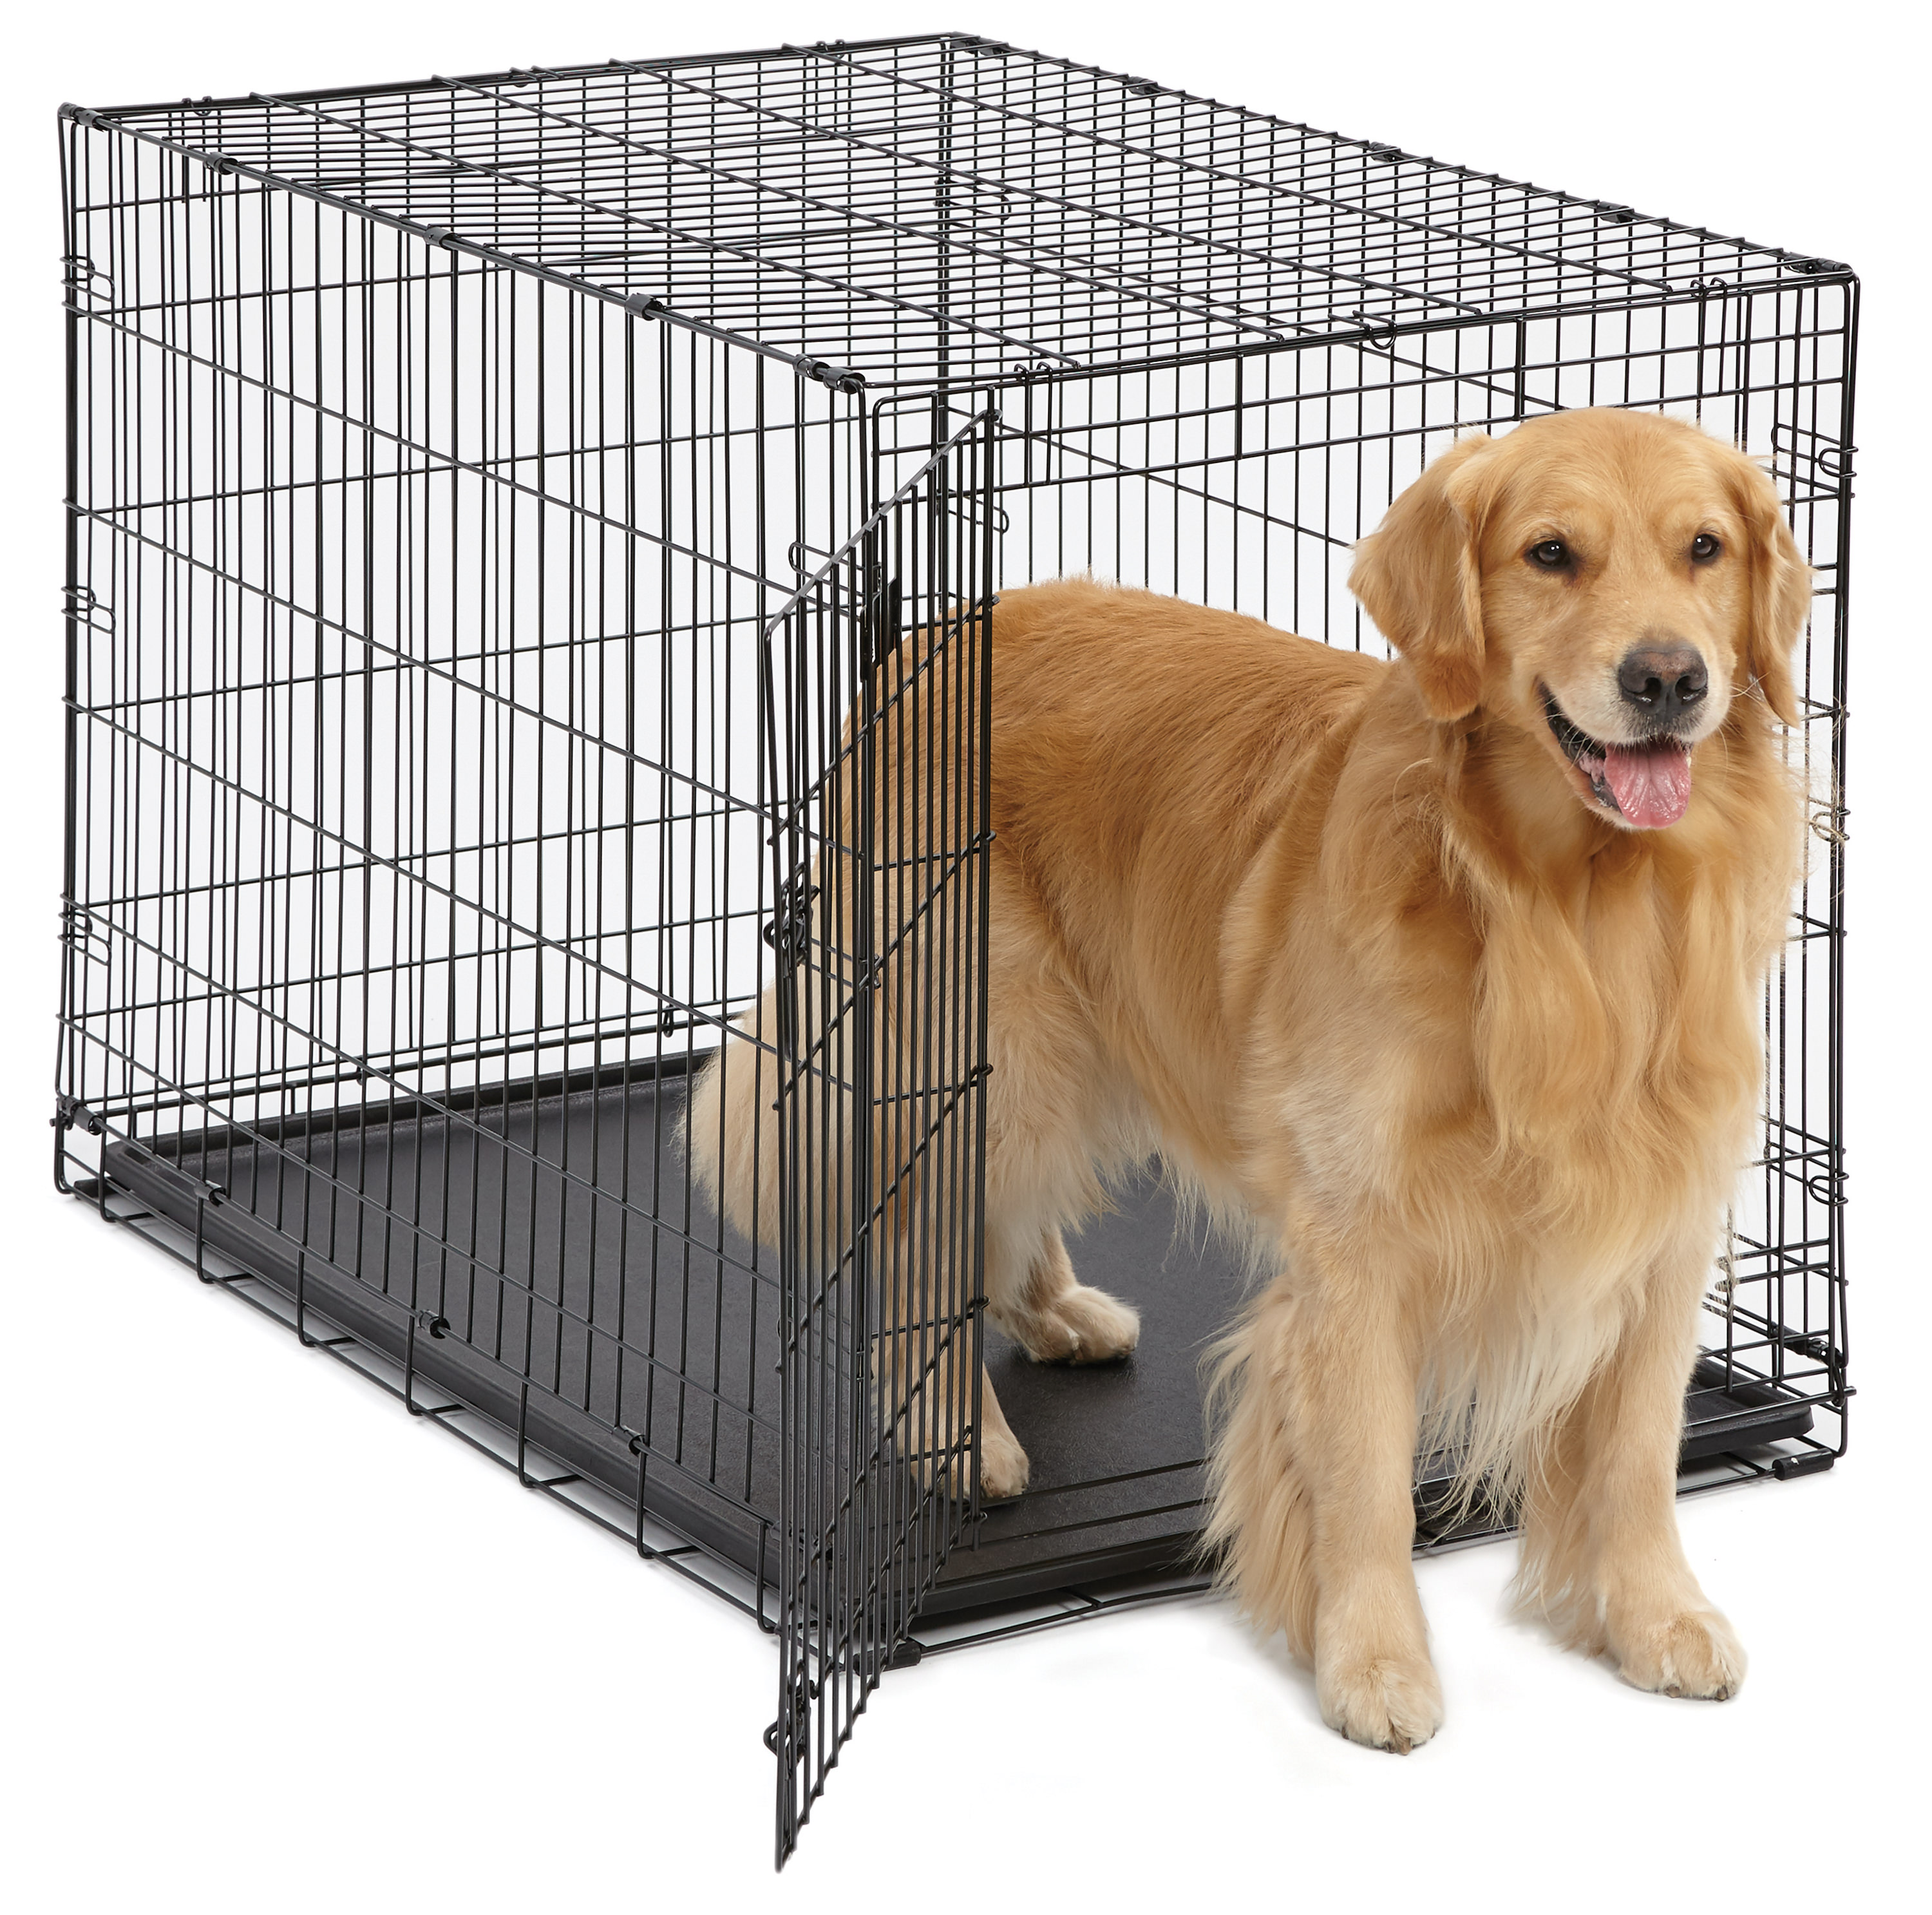 Single Door iCrate Metal Dog Crate, 42-Inch, Black by Midwest Homes For Pets